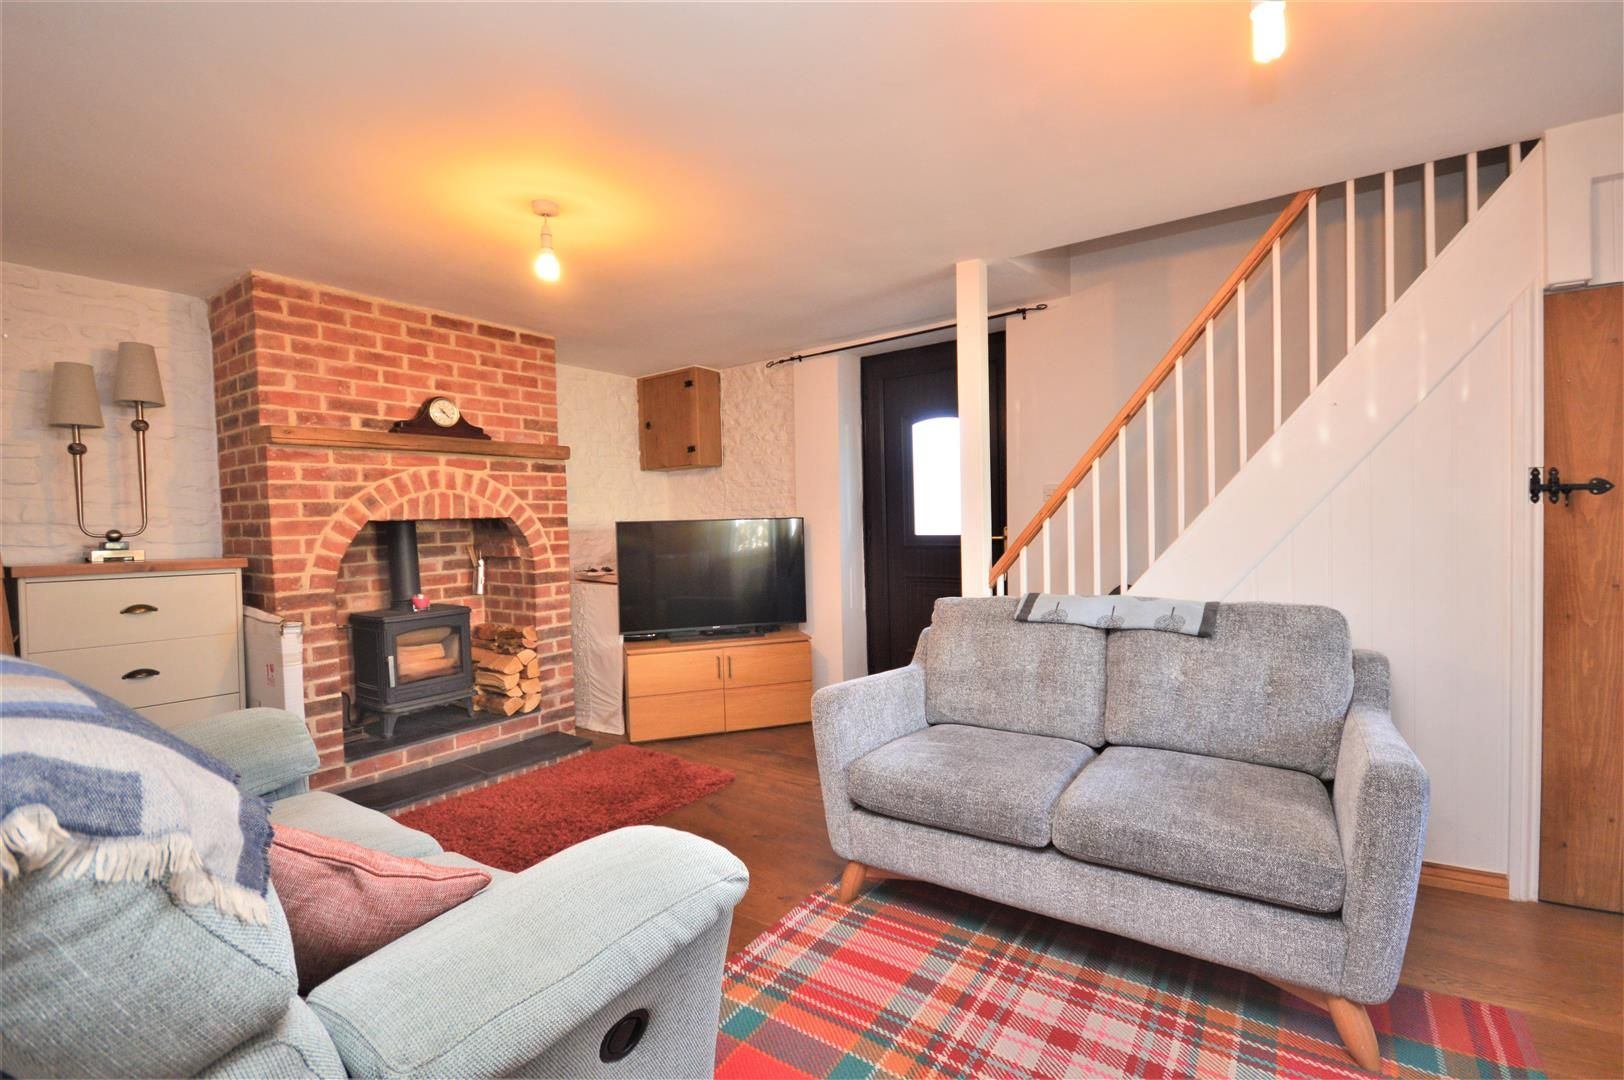 1 bed end-of-terrace for sale in Callow  - Property Image 4